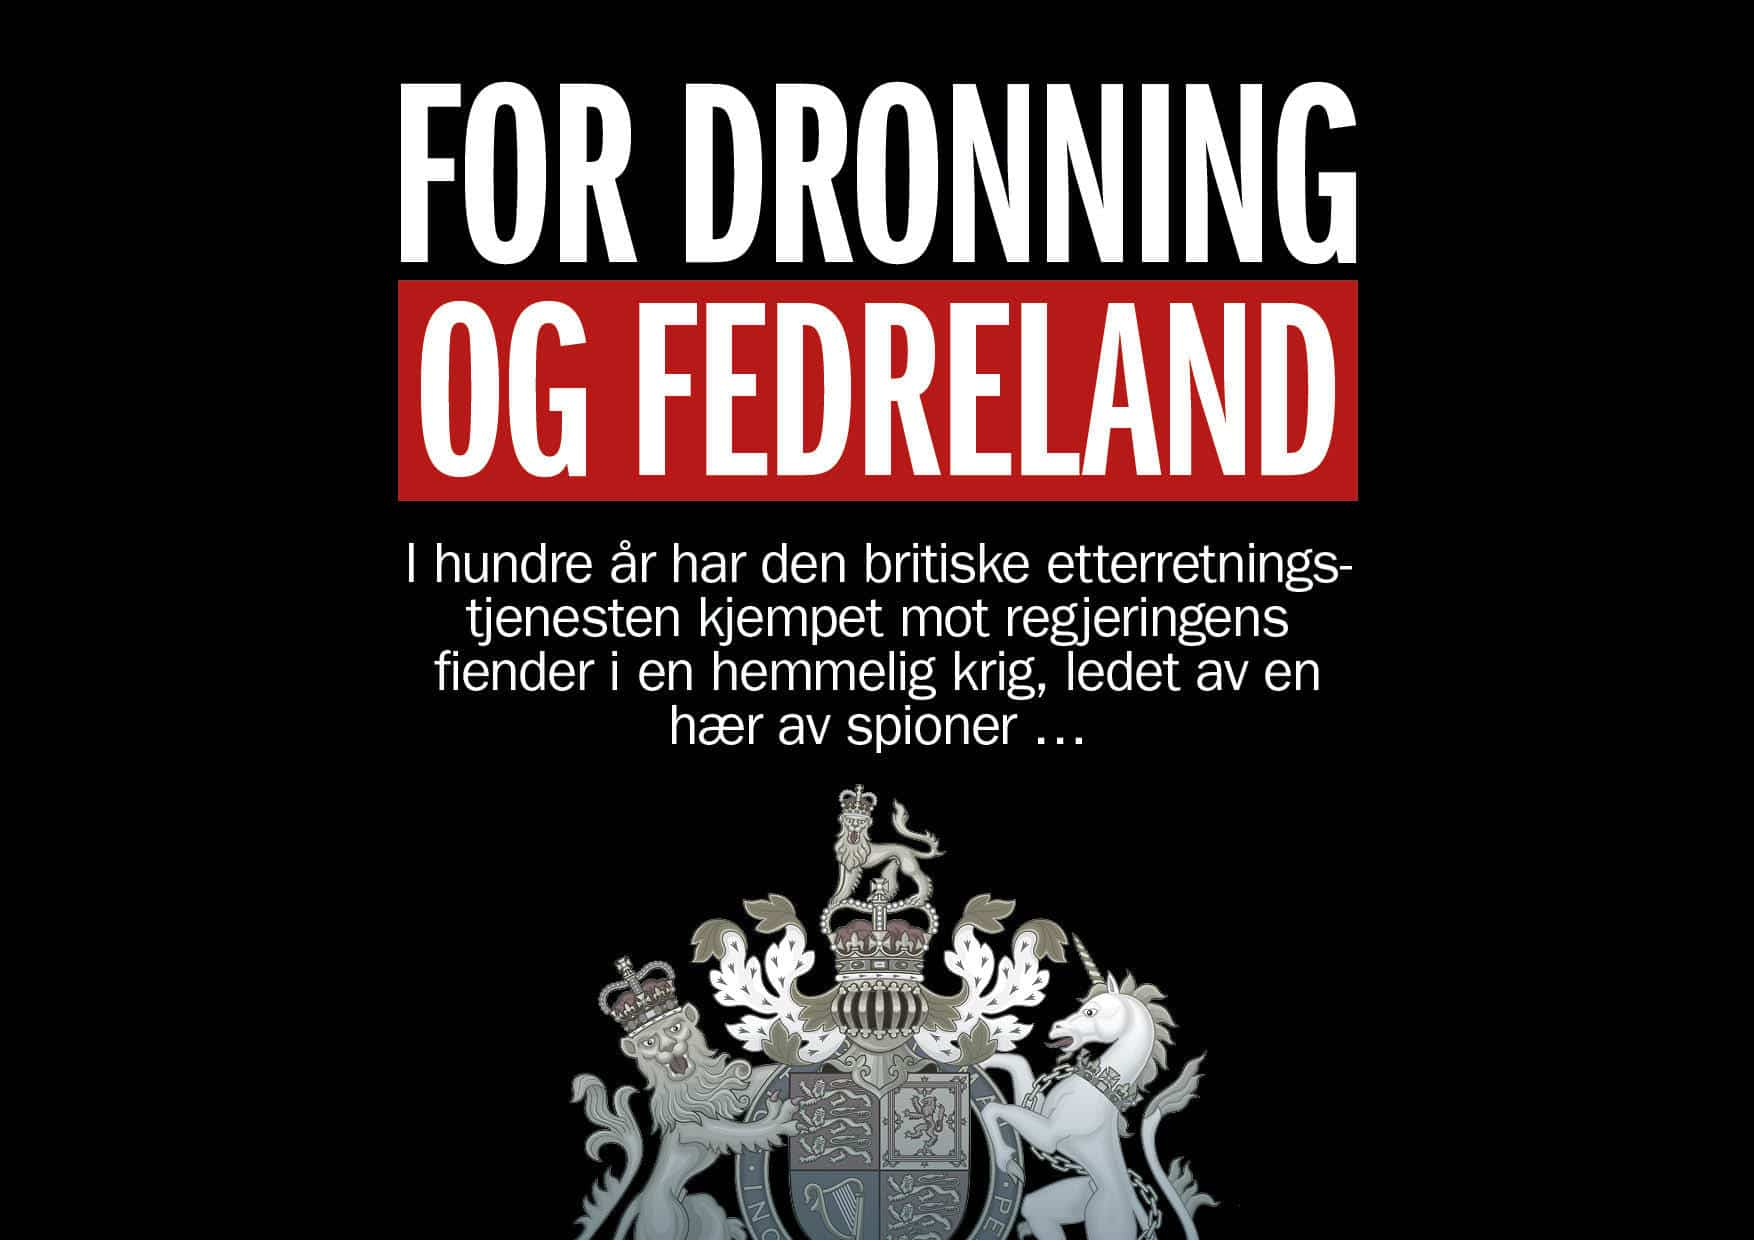 For dronning og fedreland